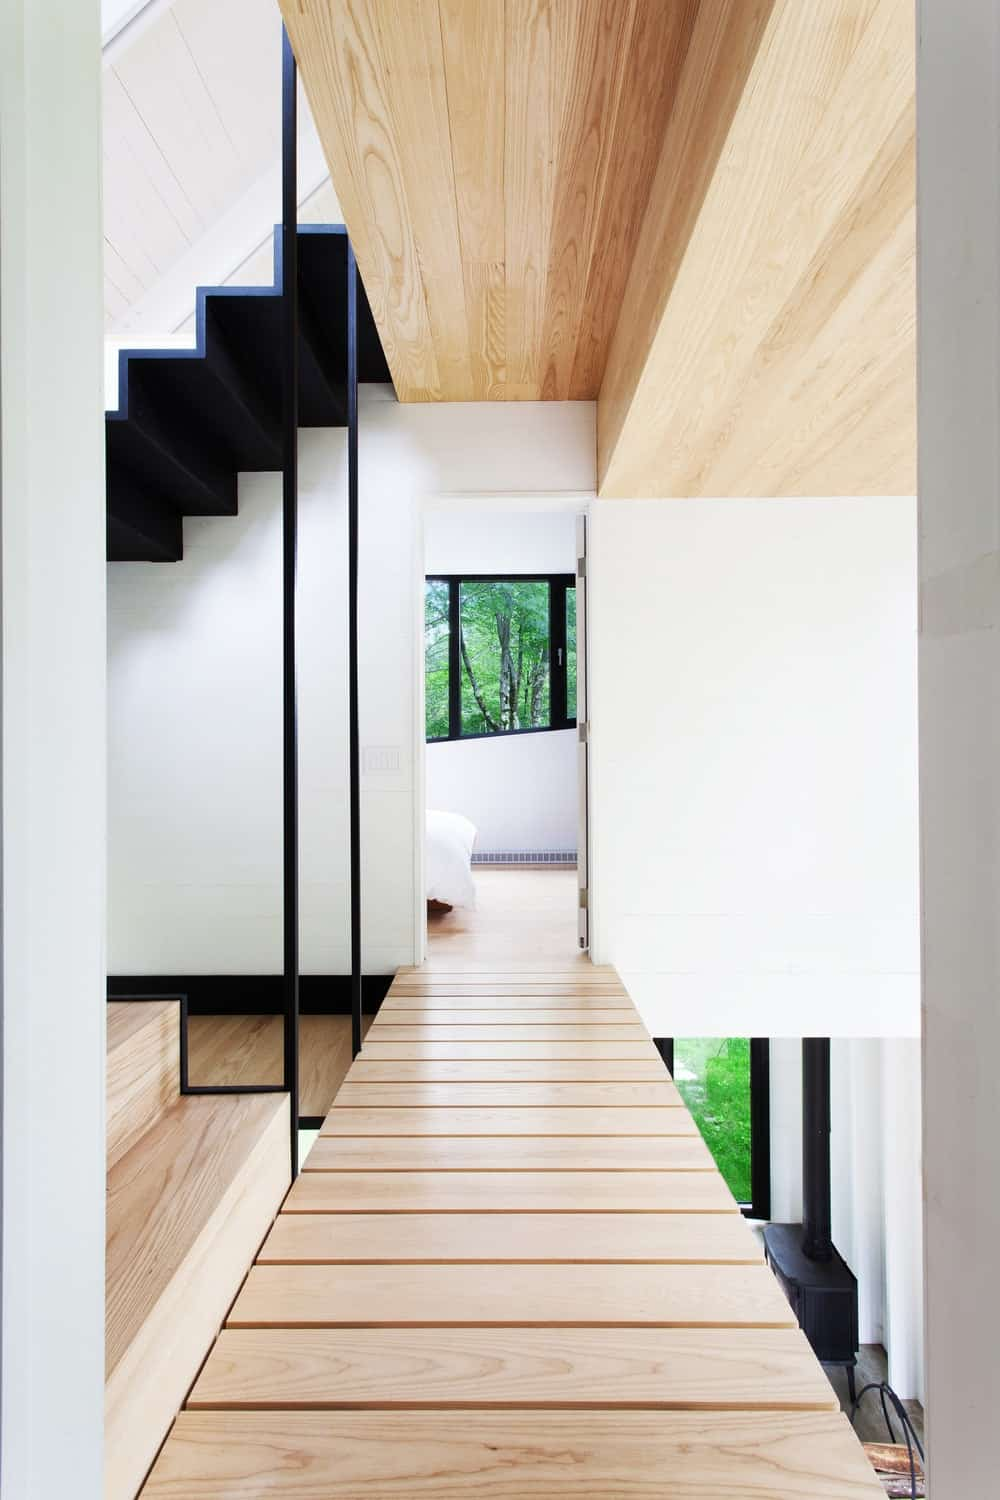 The staircase leading to a steep hallway made of hardwood. Photo Credit: Francis Pelletier